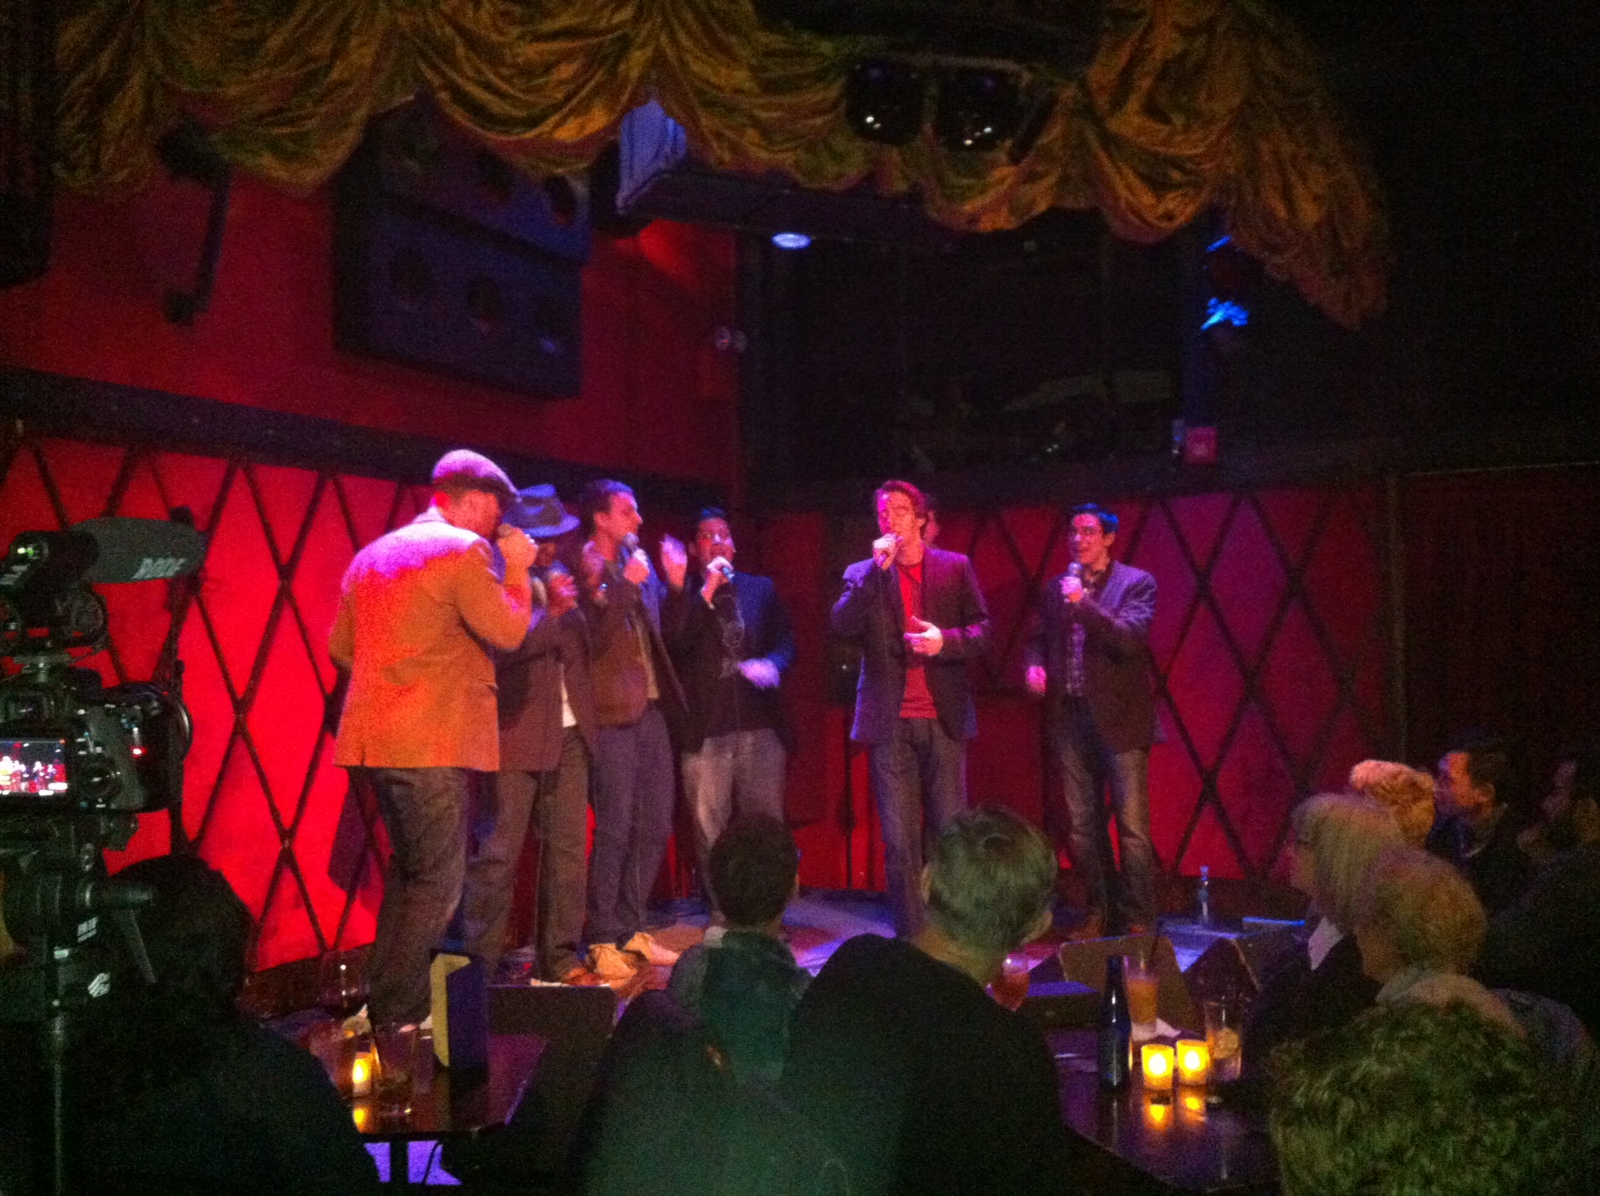 Performing at Rockwood Music Hall (October 26, 2013)